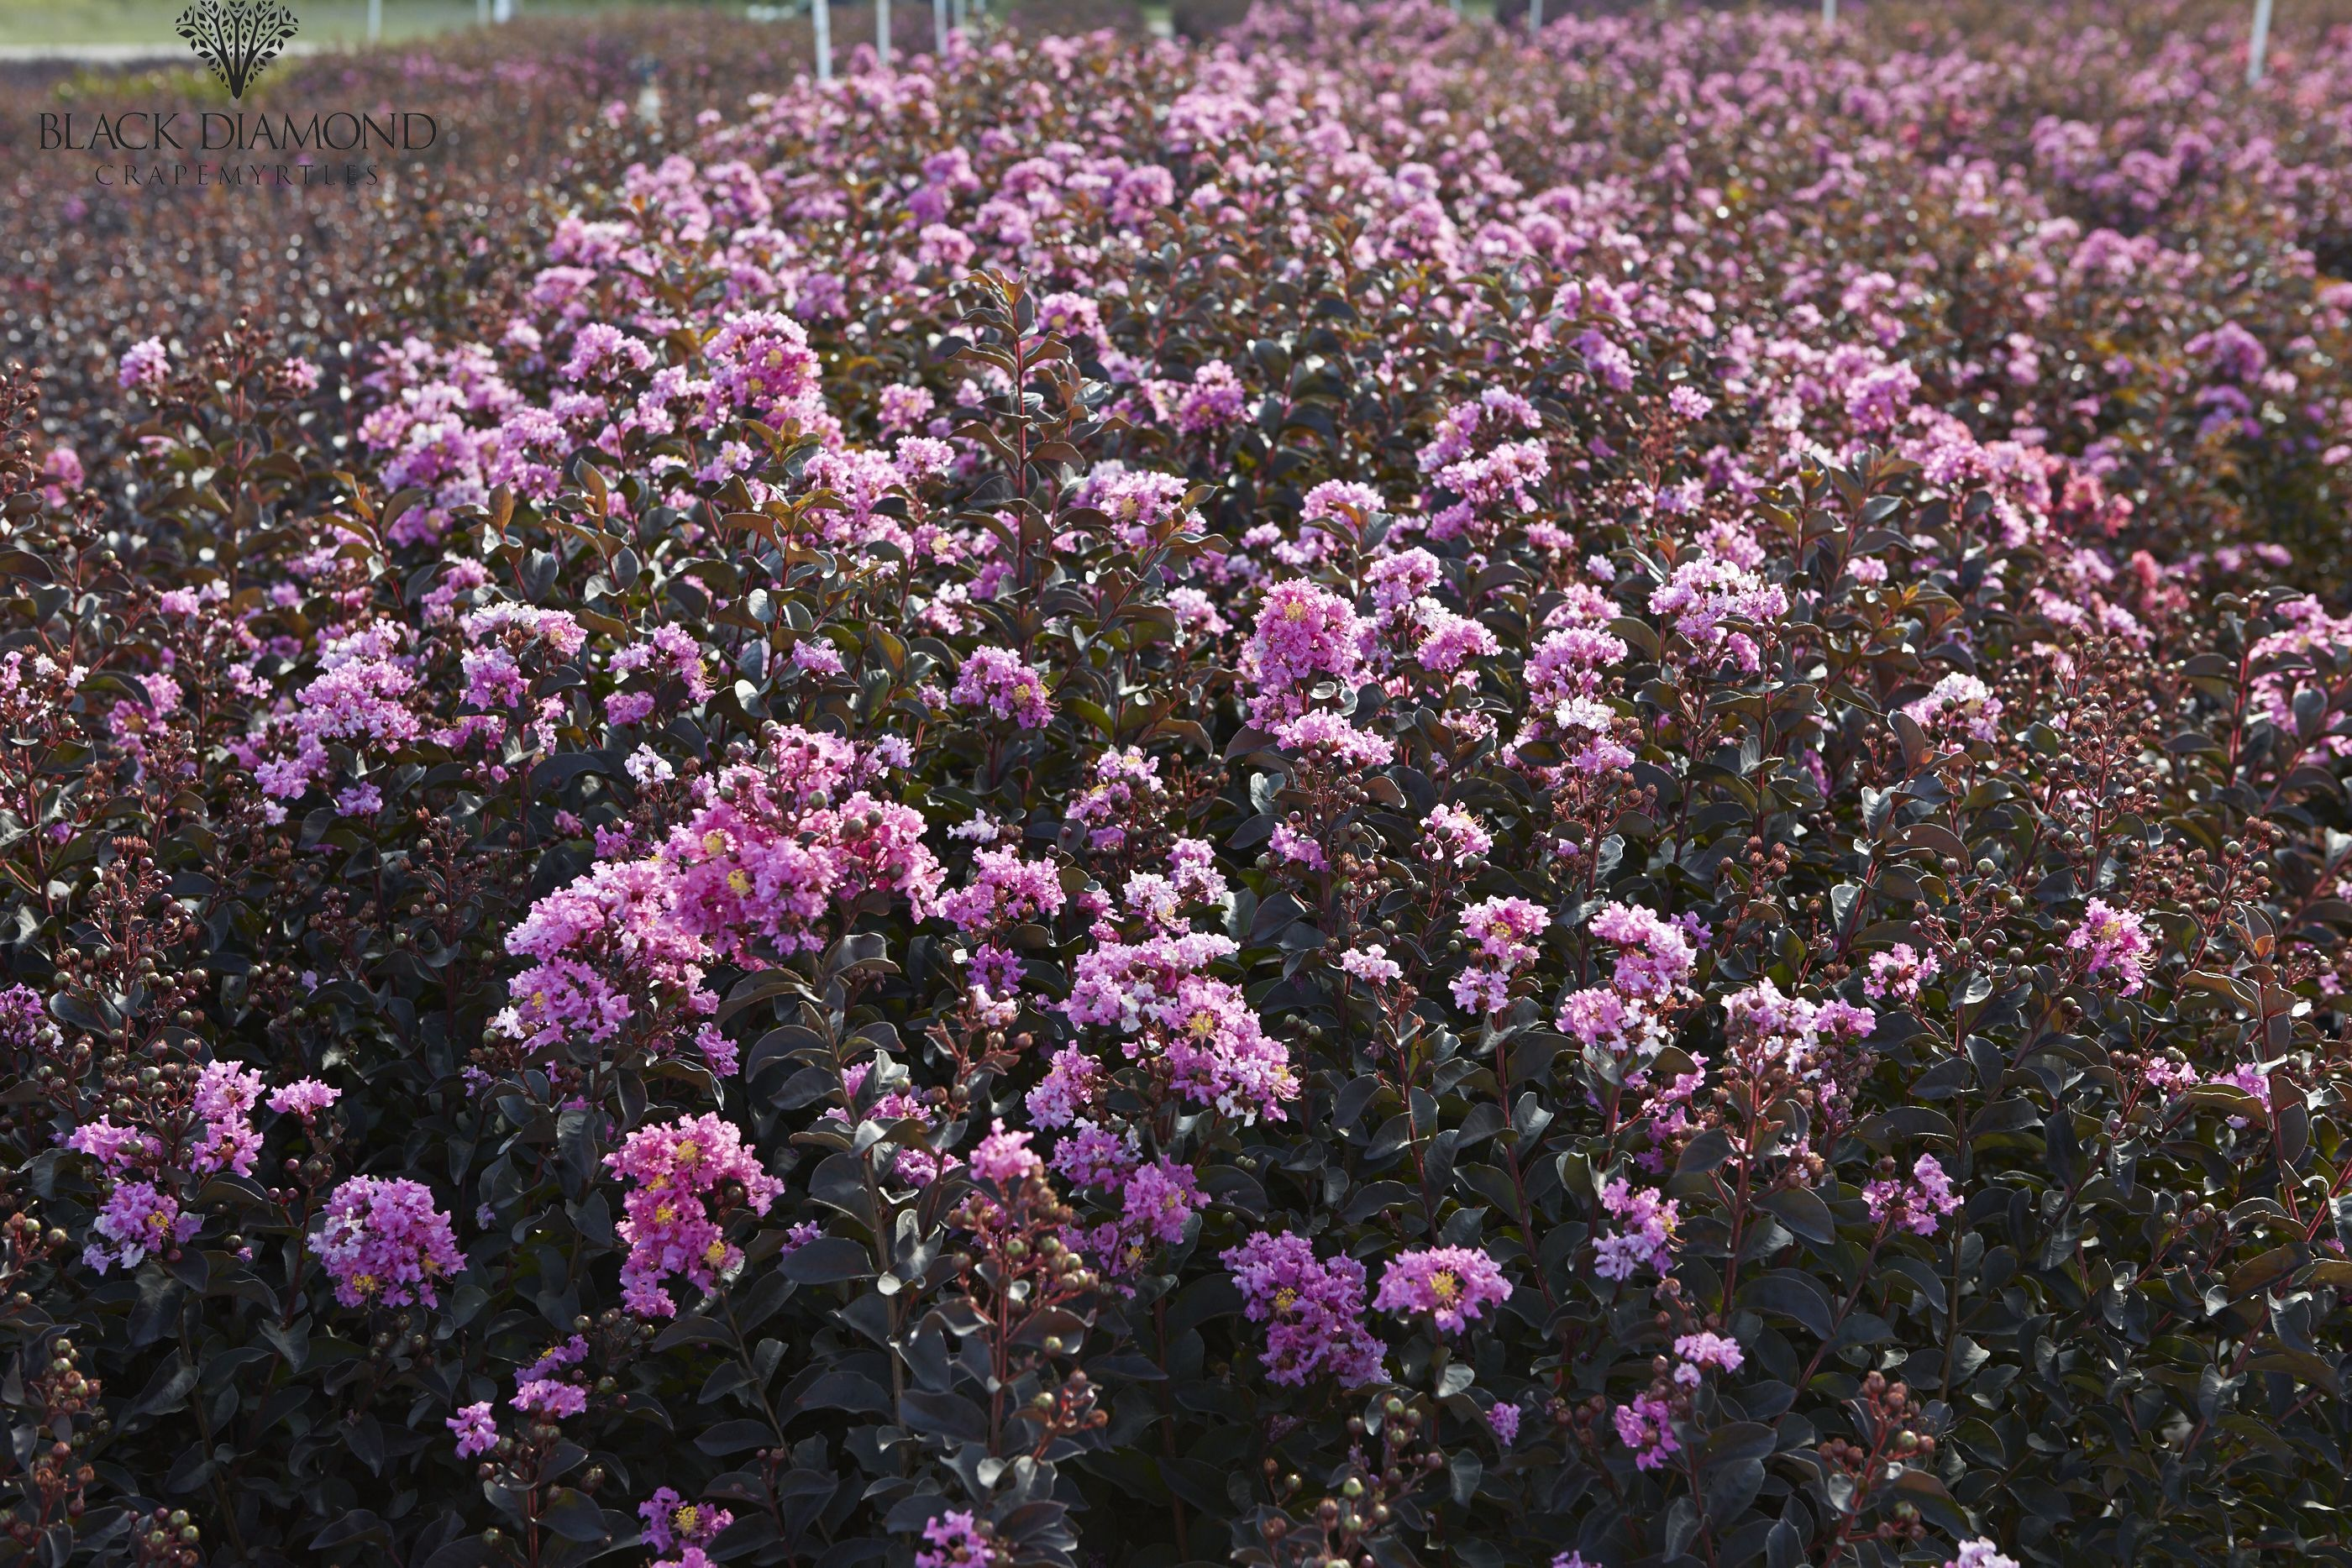 Lavender Lace Is Our Newest Black Diamond Crapemyrtle This Jewel For Your Landscape Will Be Available Fall 2016 Myblackdi Crape Myrtle Black Diamond Diamond